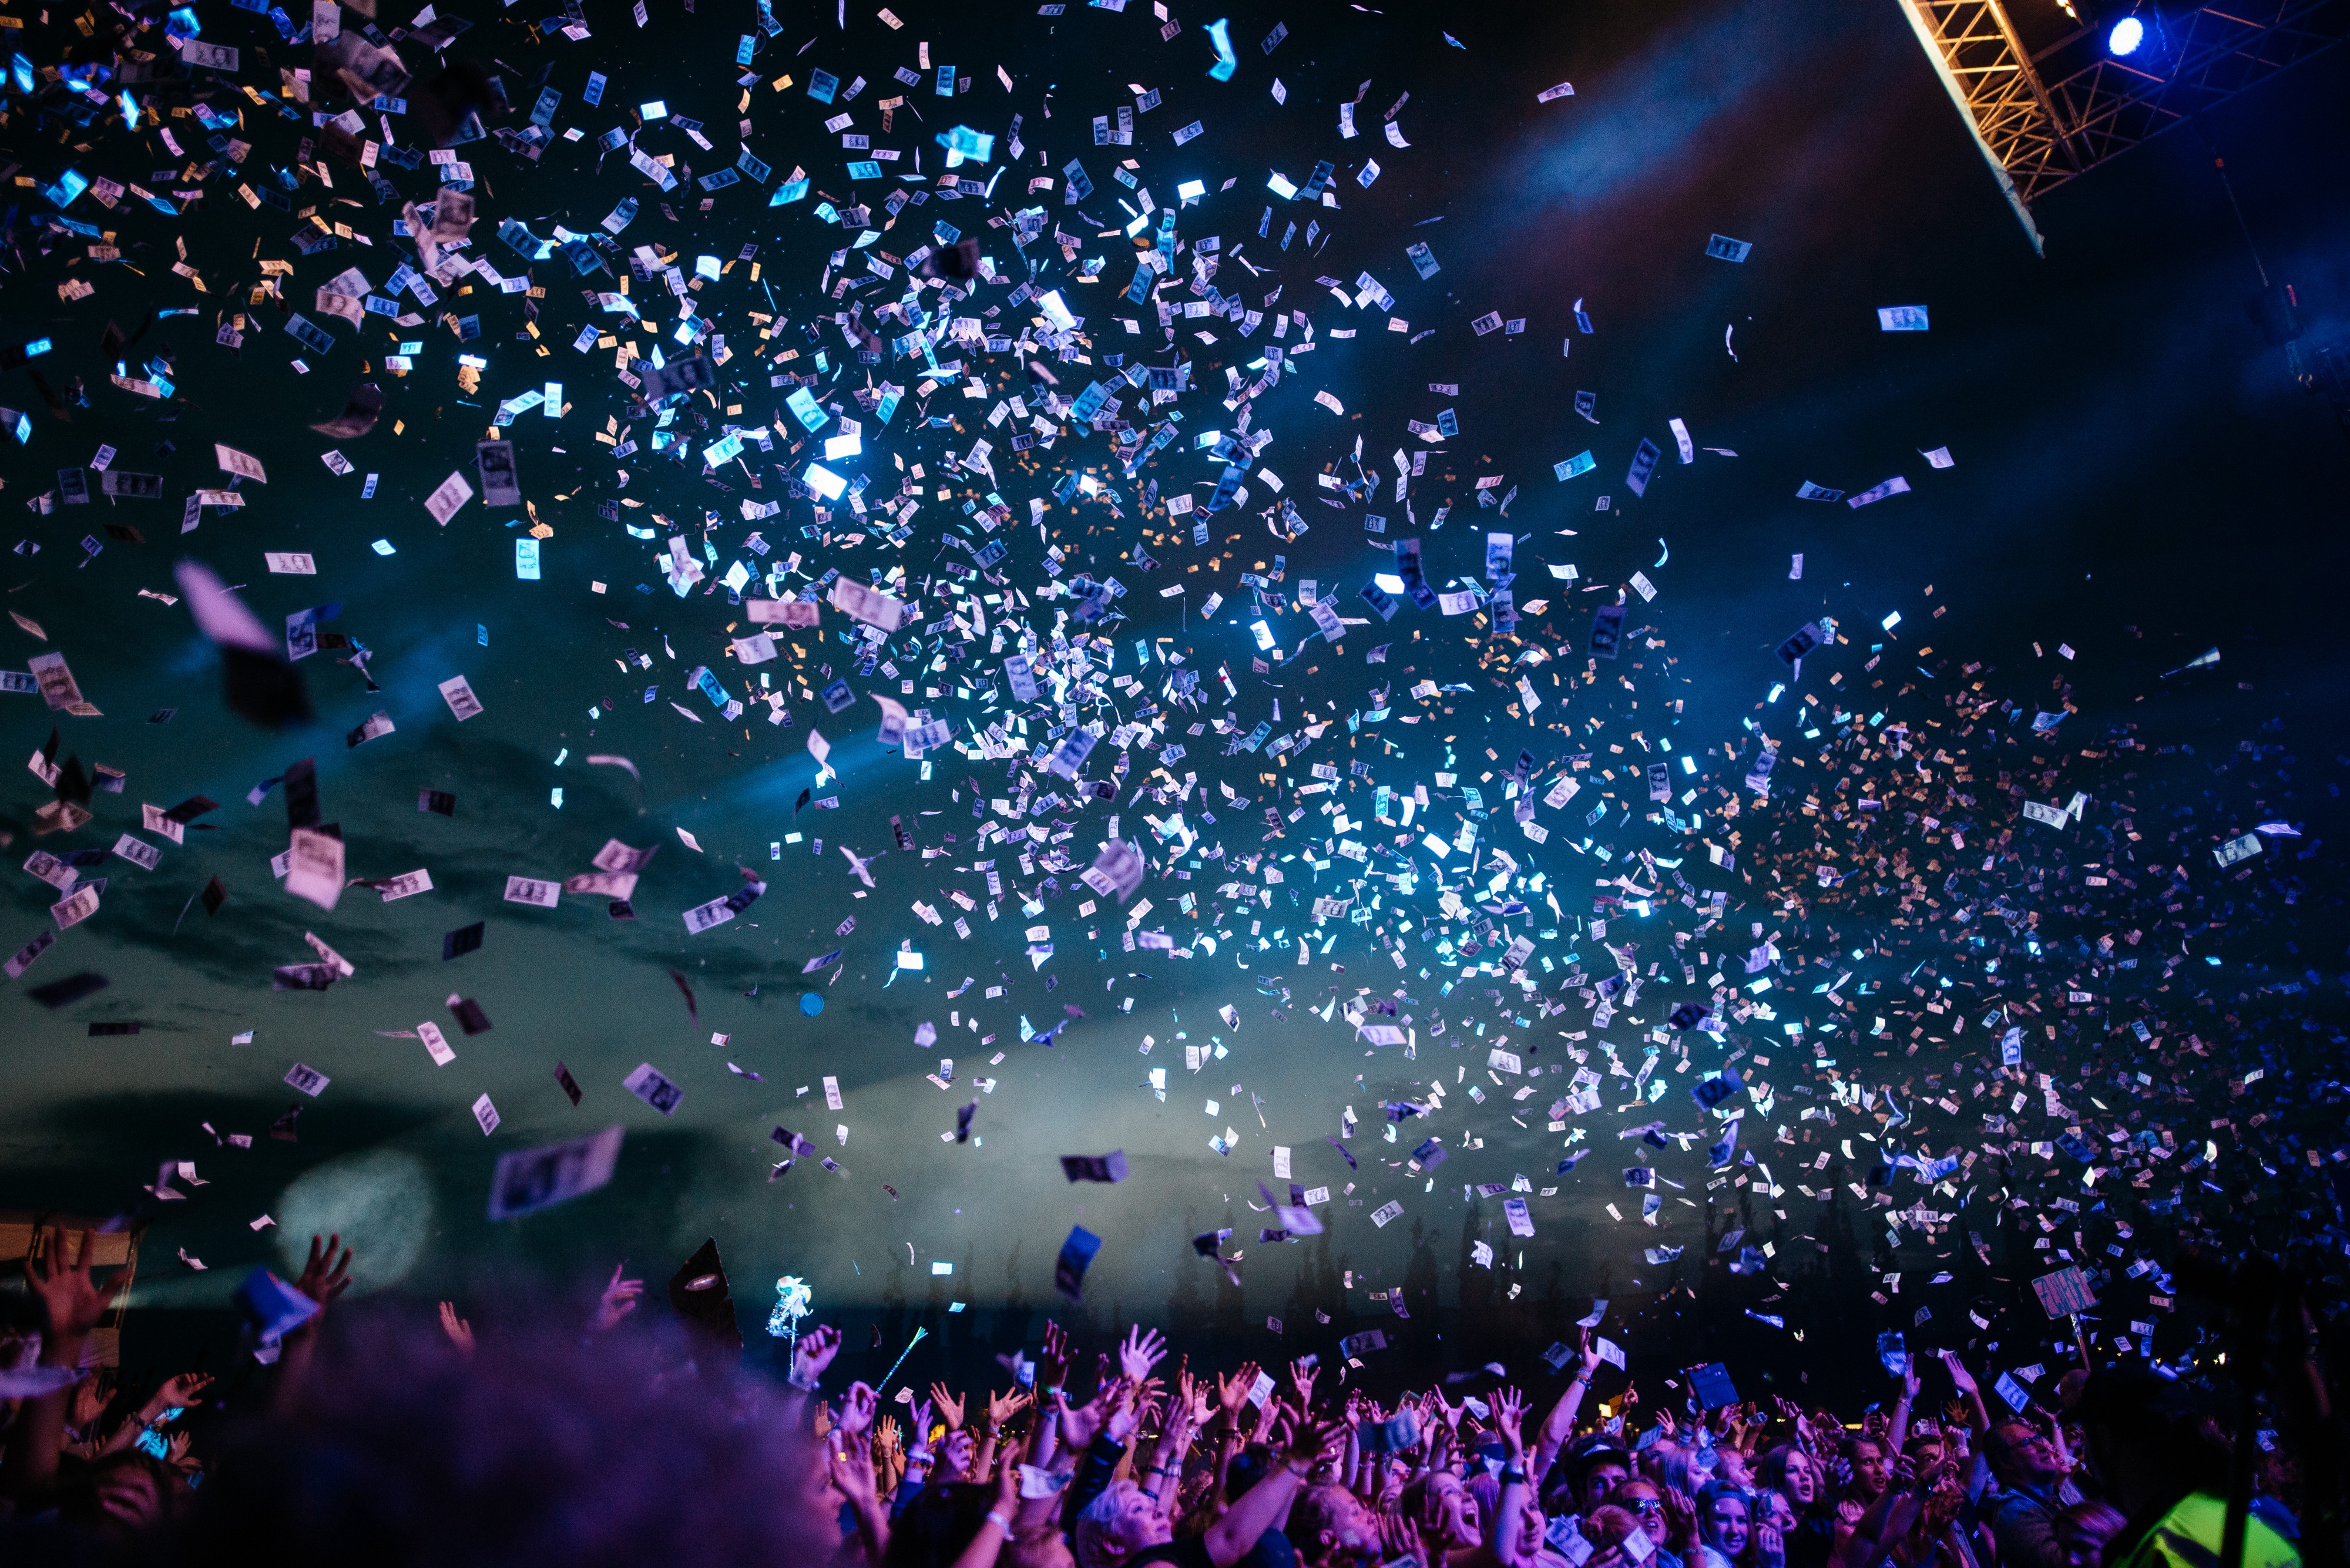 Confetti falling at a concert with bright colored lights